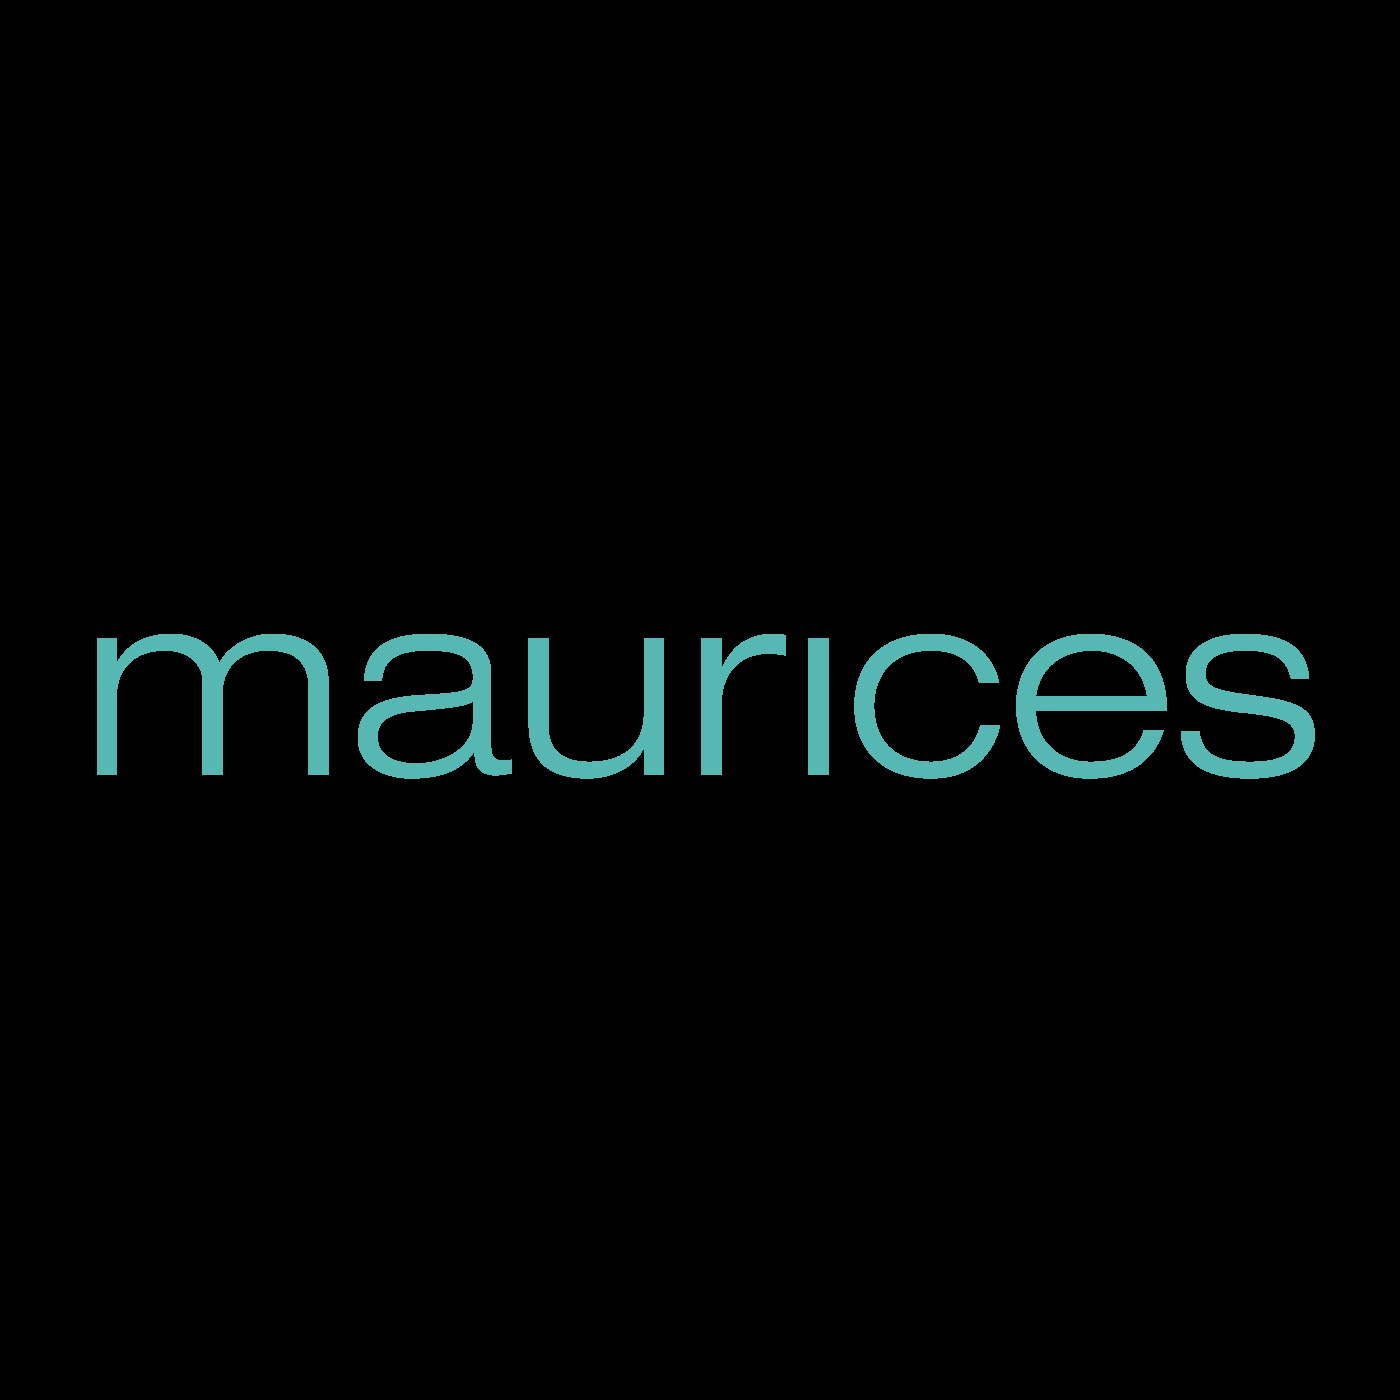 Maurices - Women's Clothing Stores